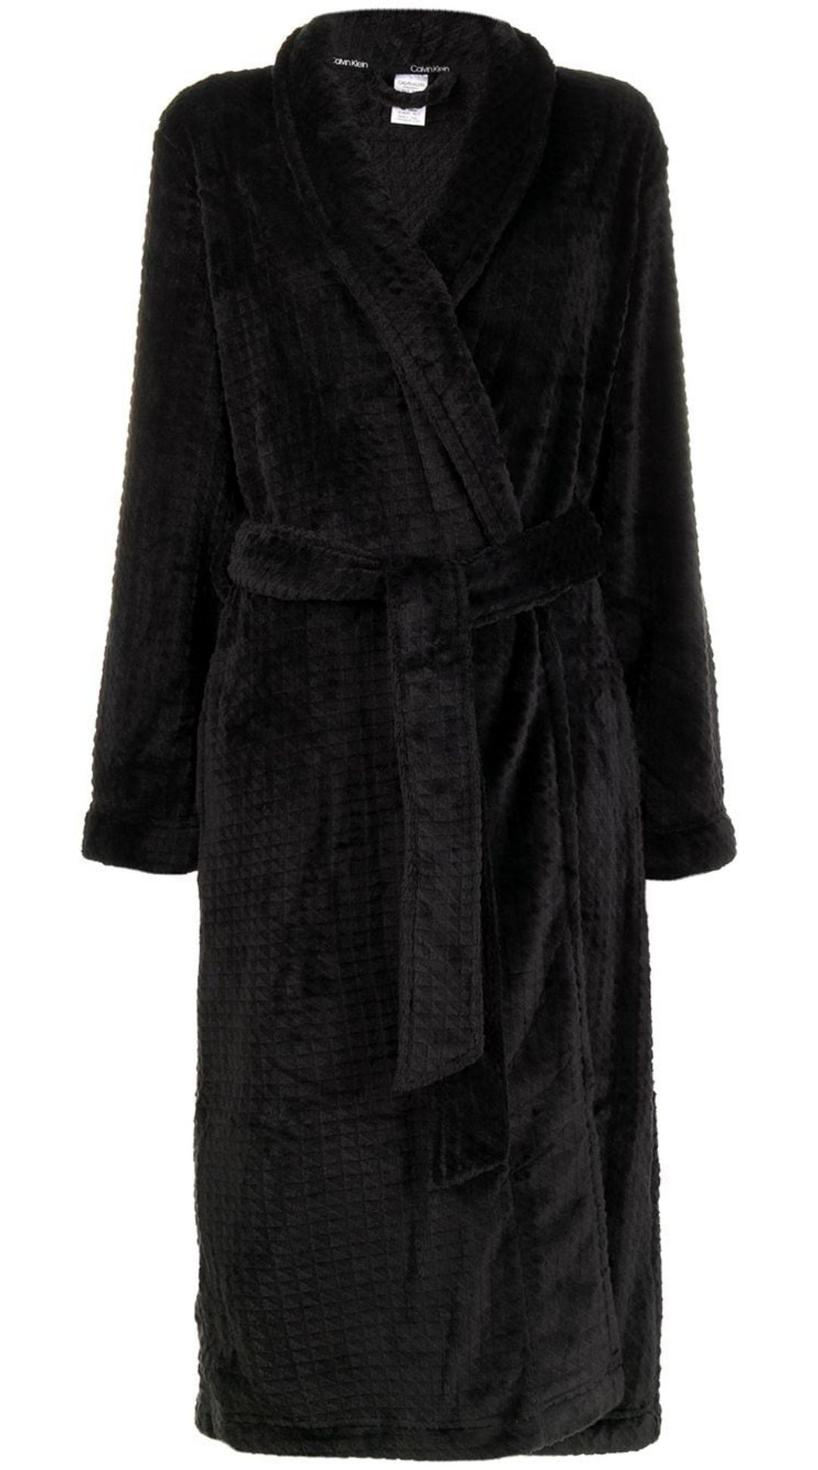 Dressing gowns, Night robes, Quarantine fashion, Covid-19, Covid-19 uae, Stay at home, Lounge wear